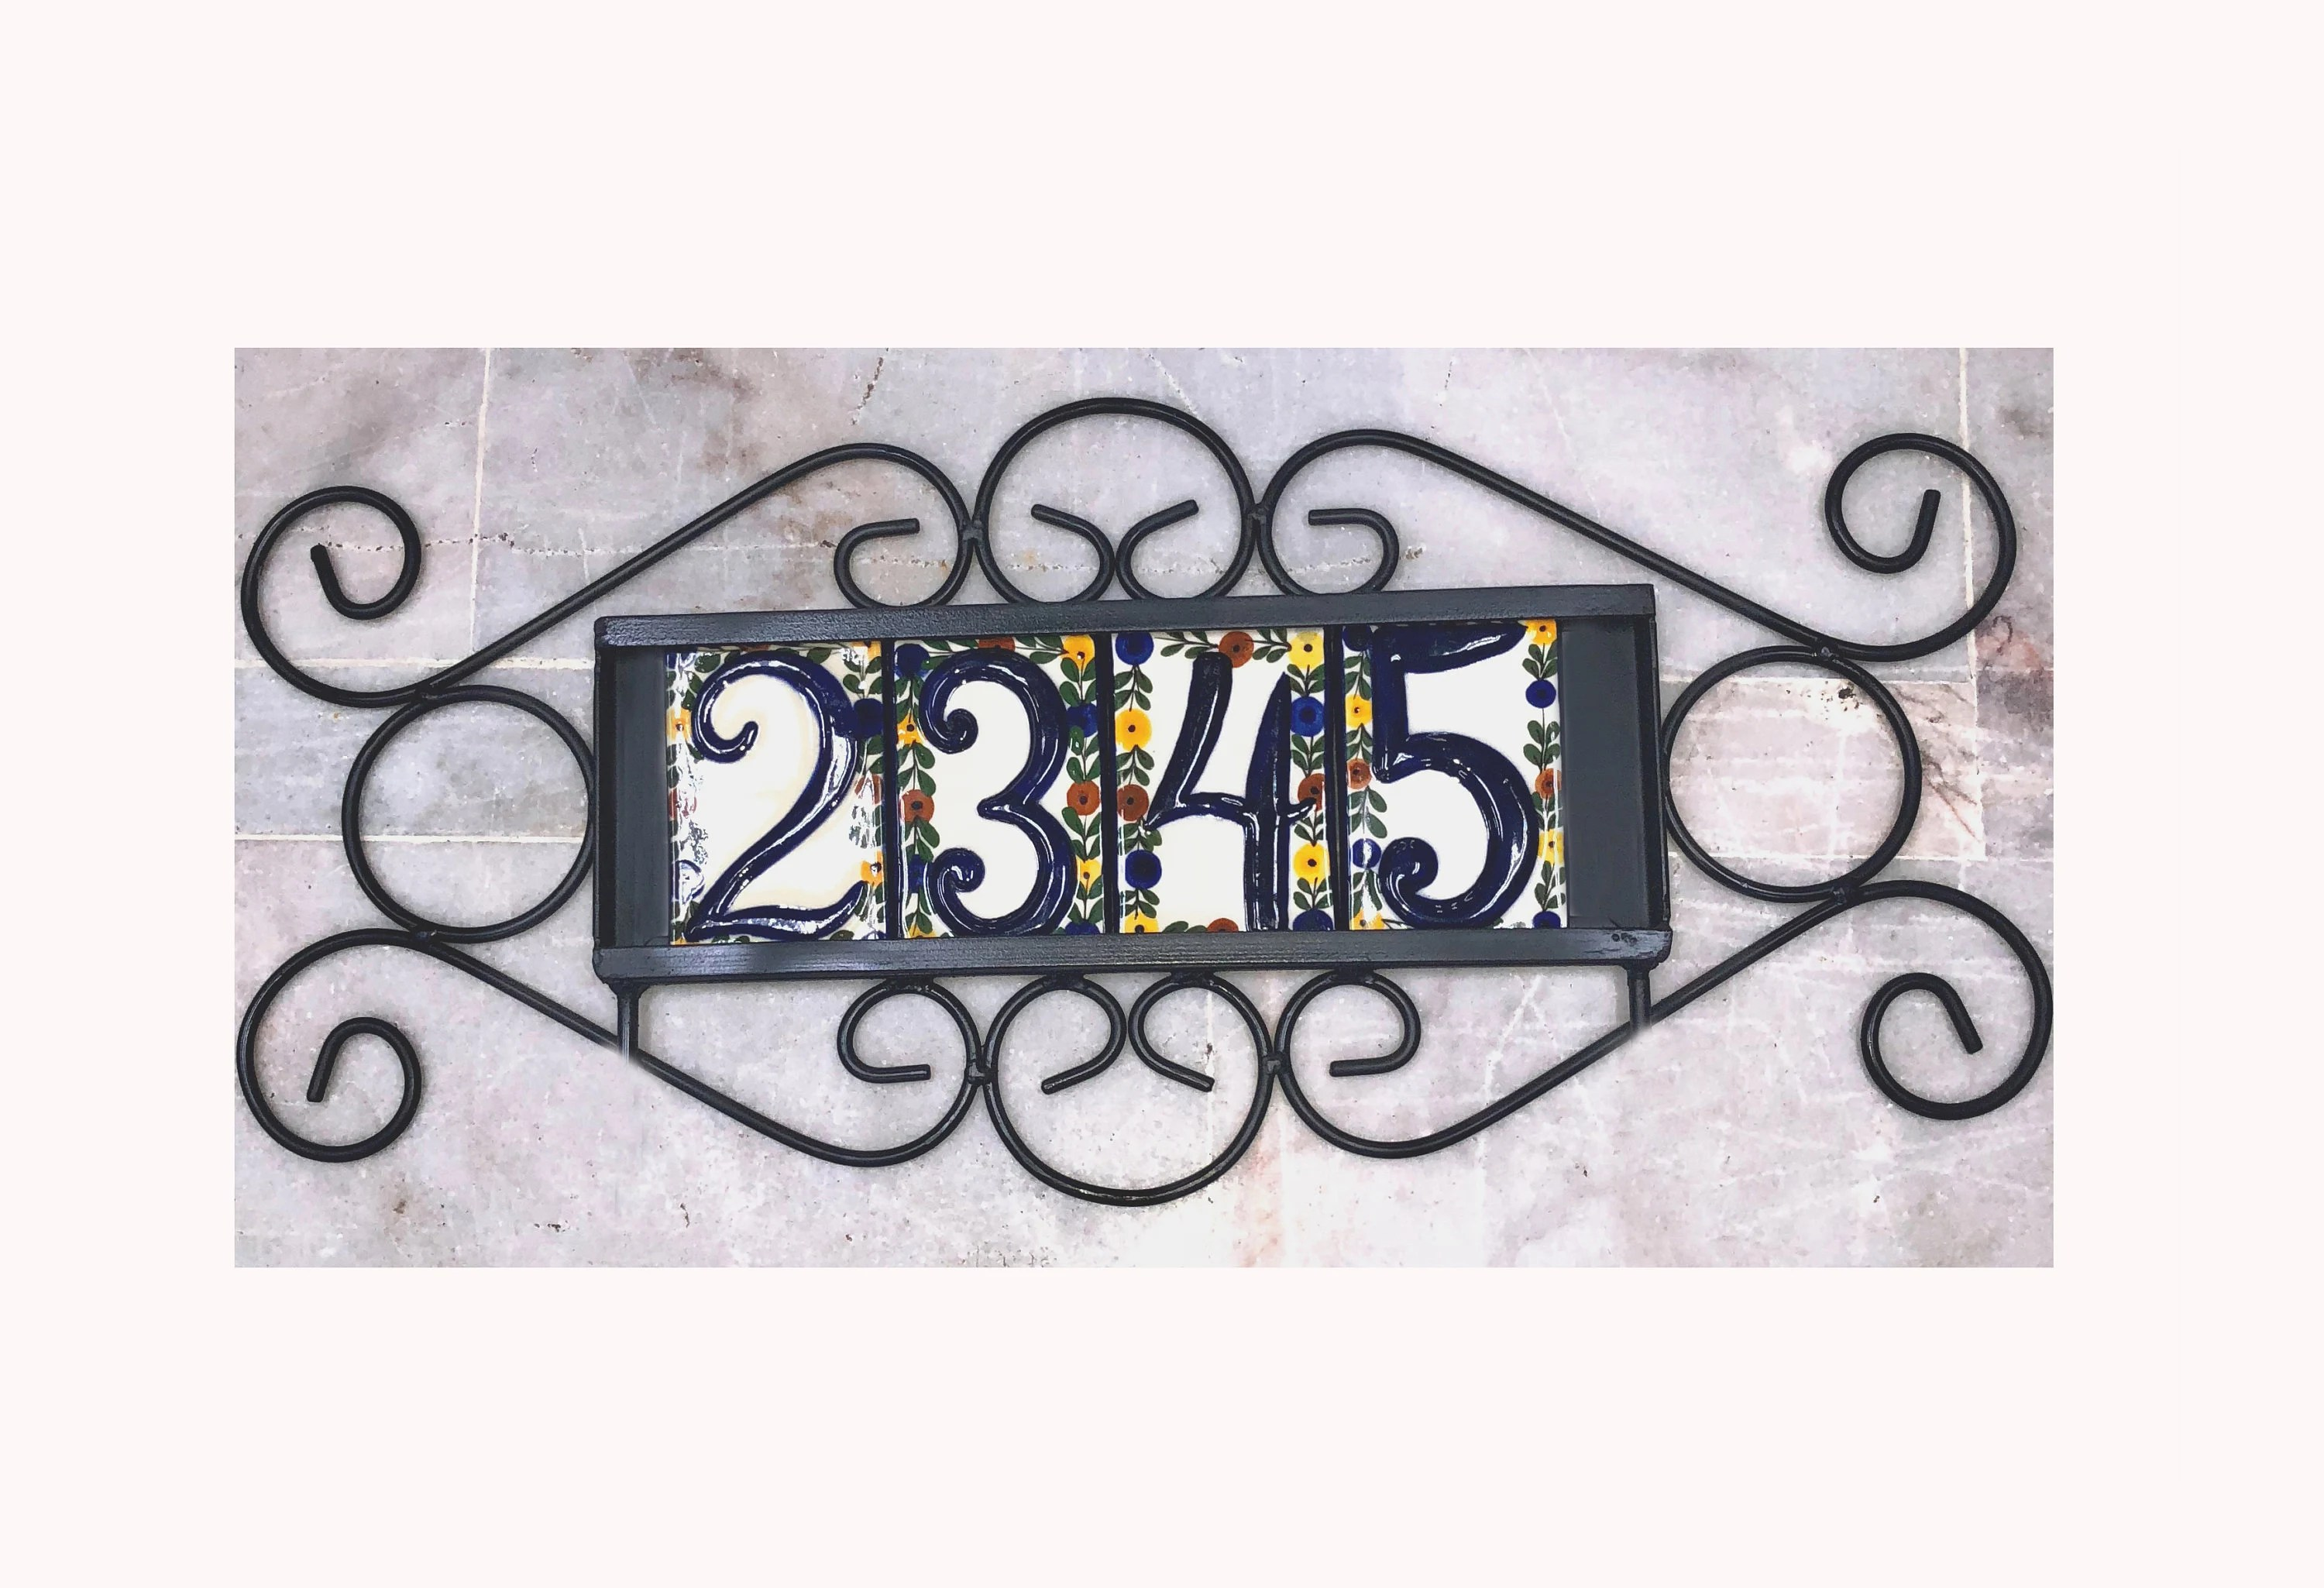 iron frame plaque holder for tiles house numbers home address etsy